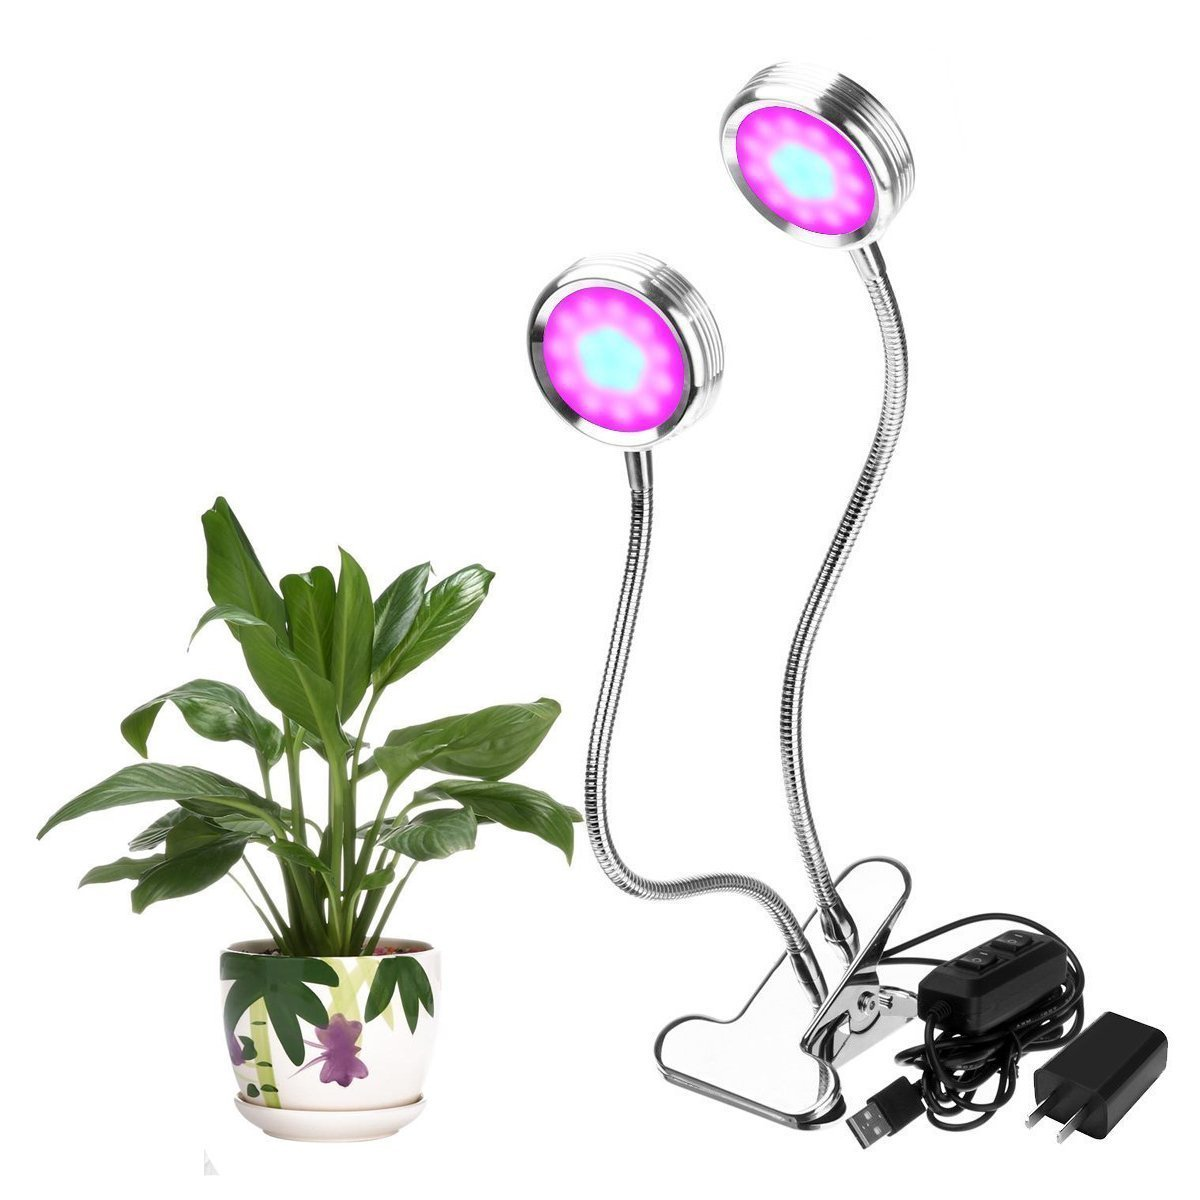 LED Grow Light 16w Dual Head Plant Lights 2 level Dimmable Desk Clip Lamp Bulb with 360 Degree Flexible for Indoor Garden Greenhouse Hydroponic Office